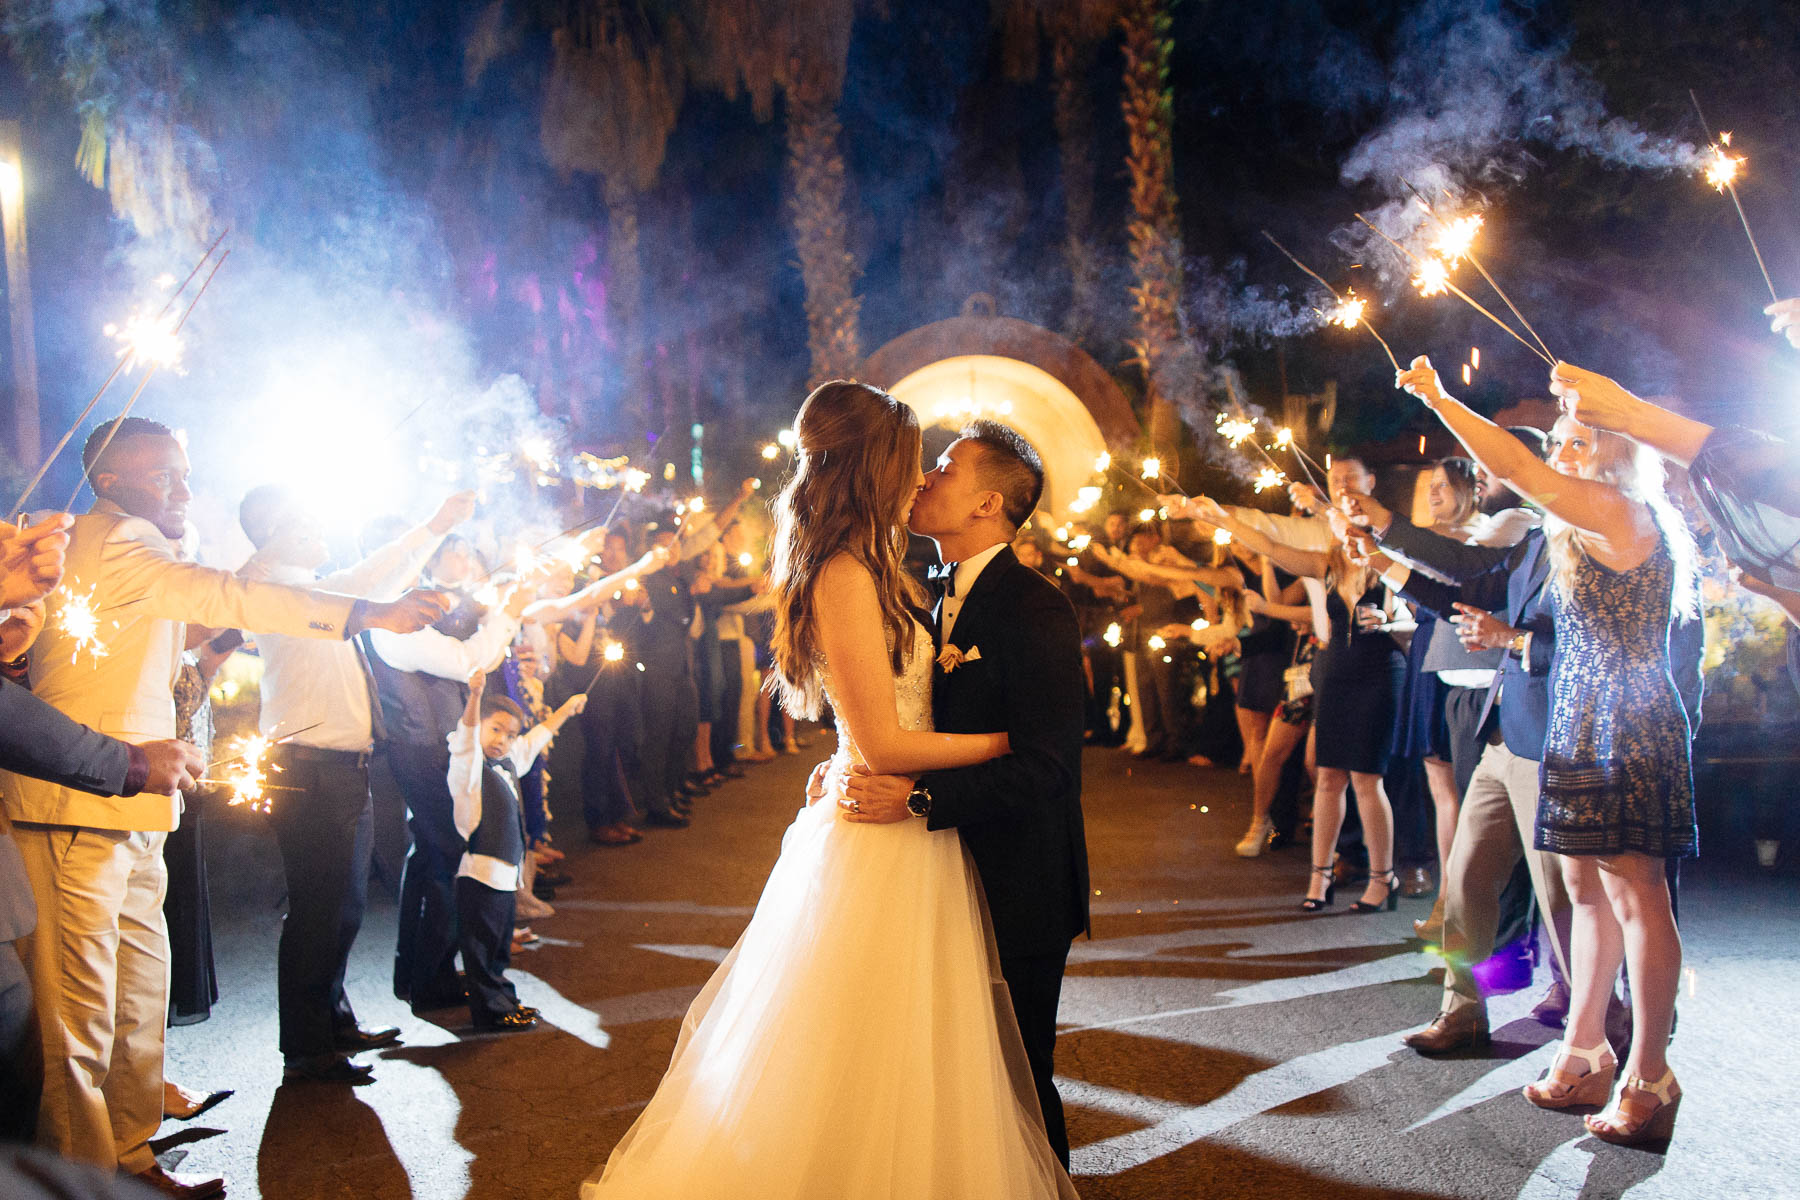 161112-Luxium-Weddings-Arizona-Jon-Madison-Boojum-Tree-First-Look-049.jpg